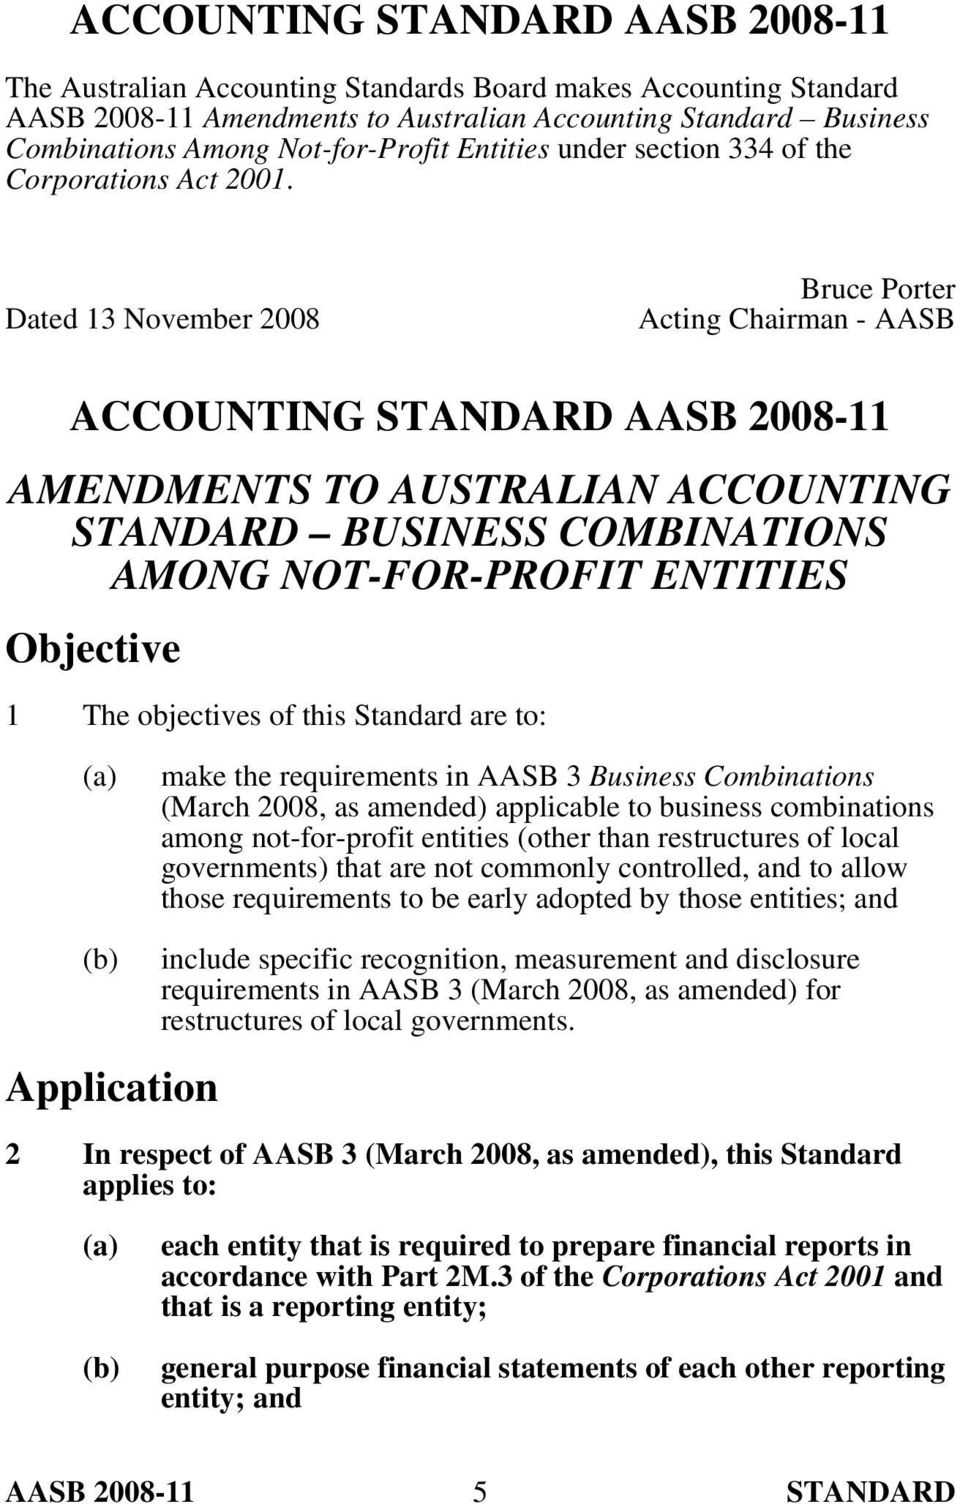 Dated 13 November 2008 Bruce Porter Acting Chairman - AASB ACCOUNTING STANDARD AASB 2008-11 AMENDMENTS TO AUSTRALIAN ACCOUNTING STANDARD BUSINESS COMBINATIONS AMONG NOT-FOR-PROFIT ENTITIES Objective